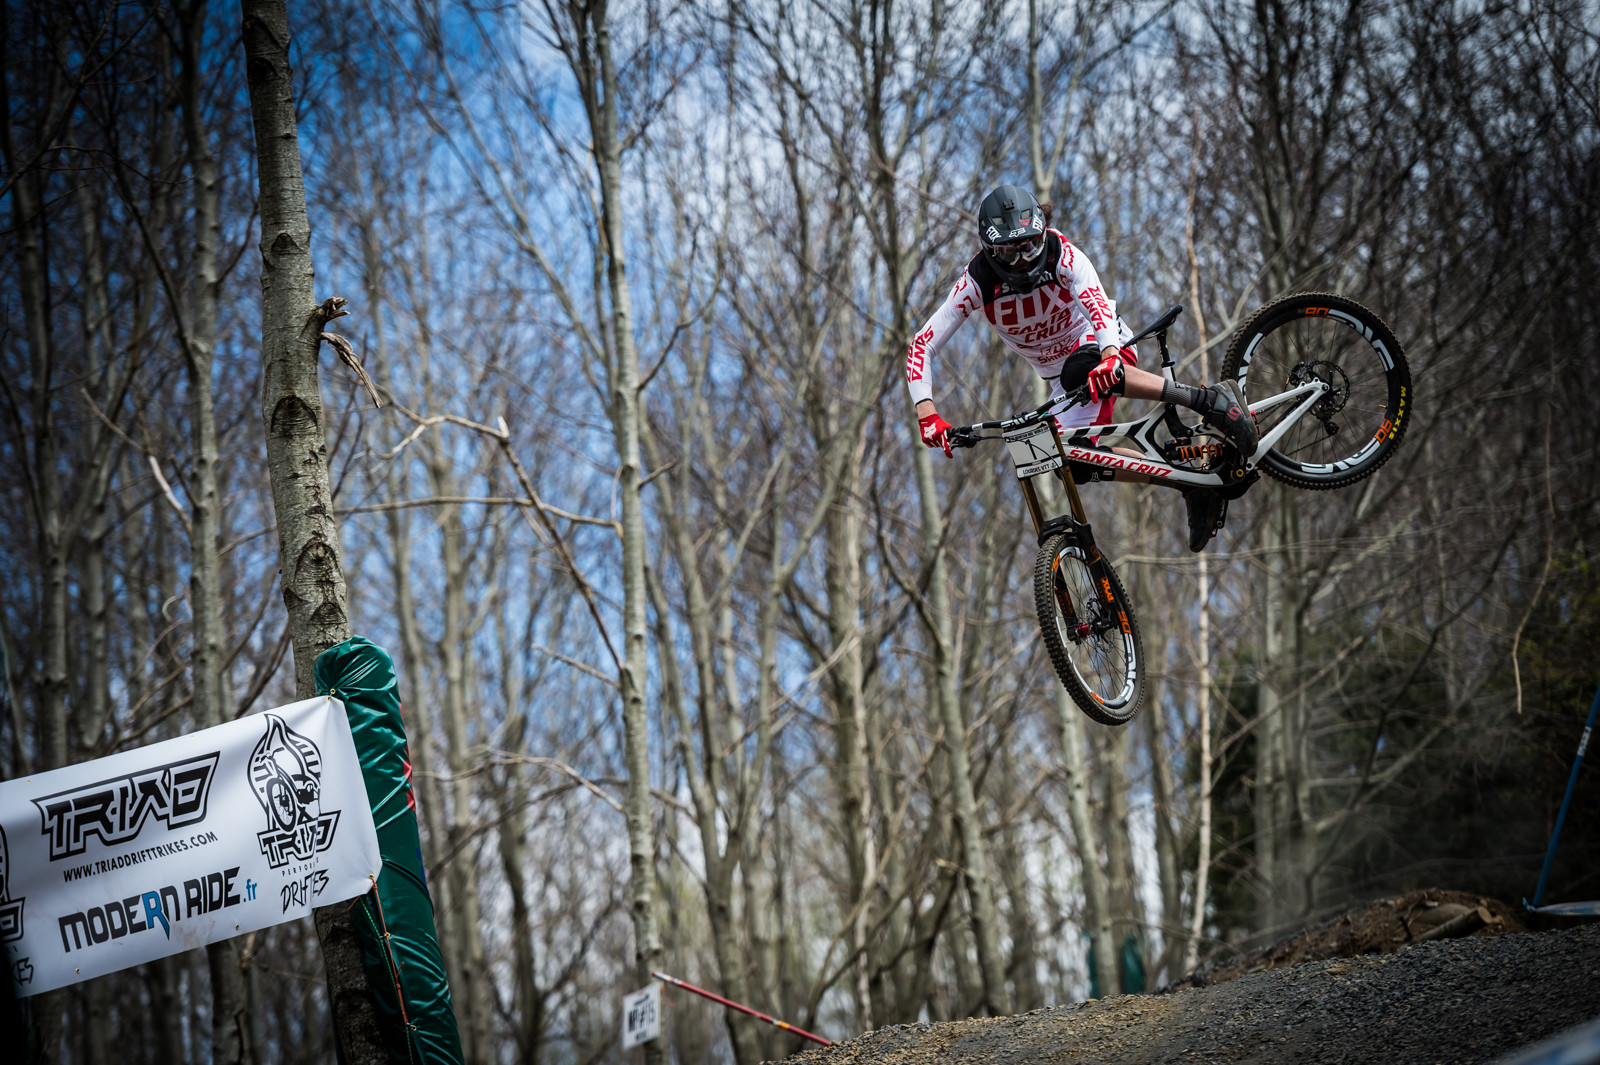 Ratty World Cup Whip - World Cup Whip Off! - Mountain Biking Pictures - Vital MTB